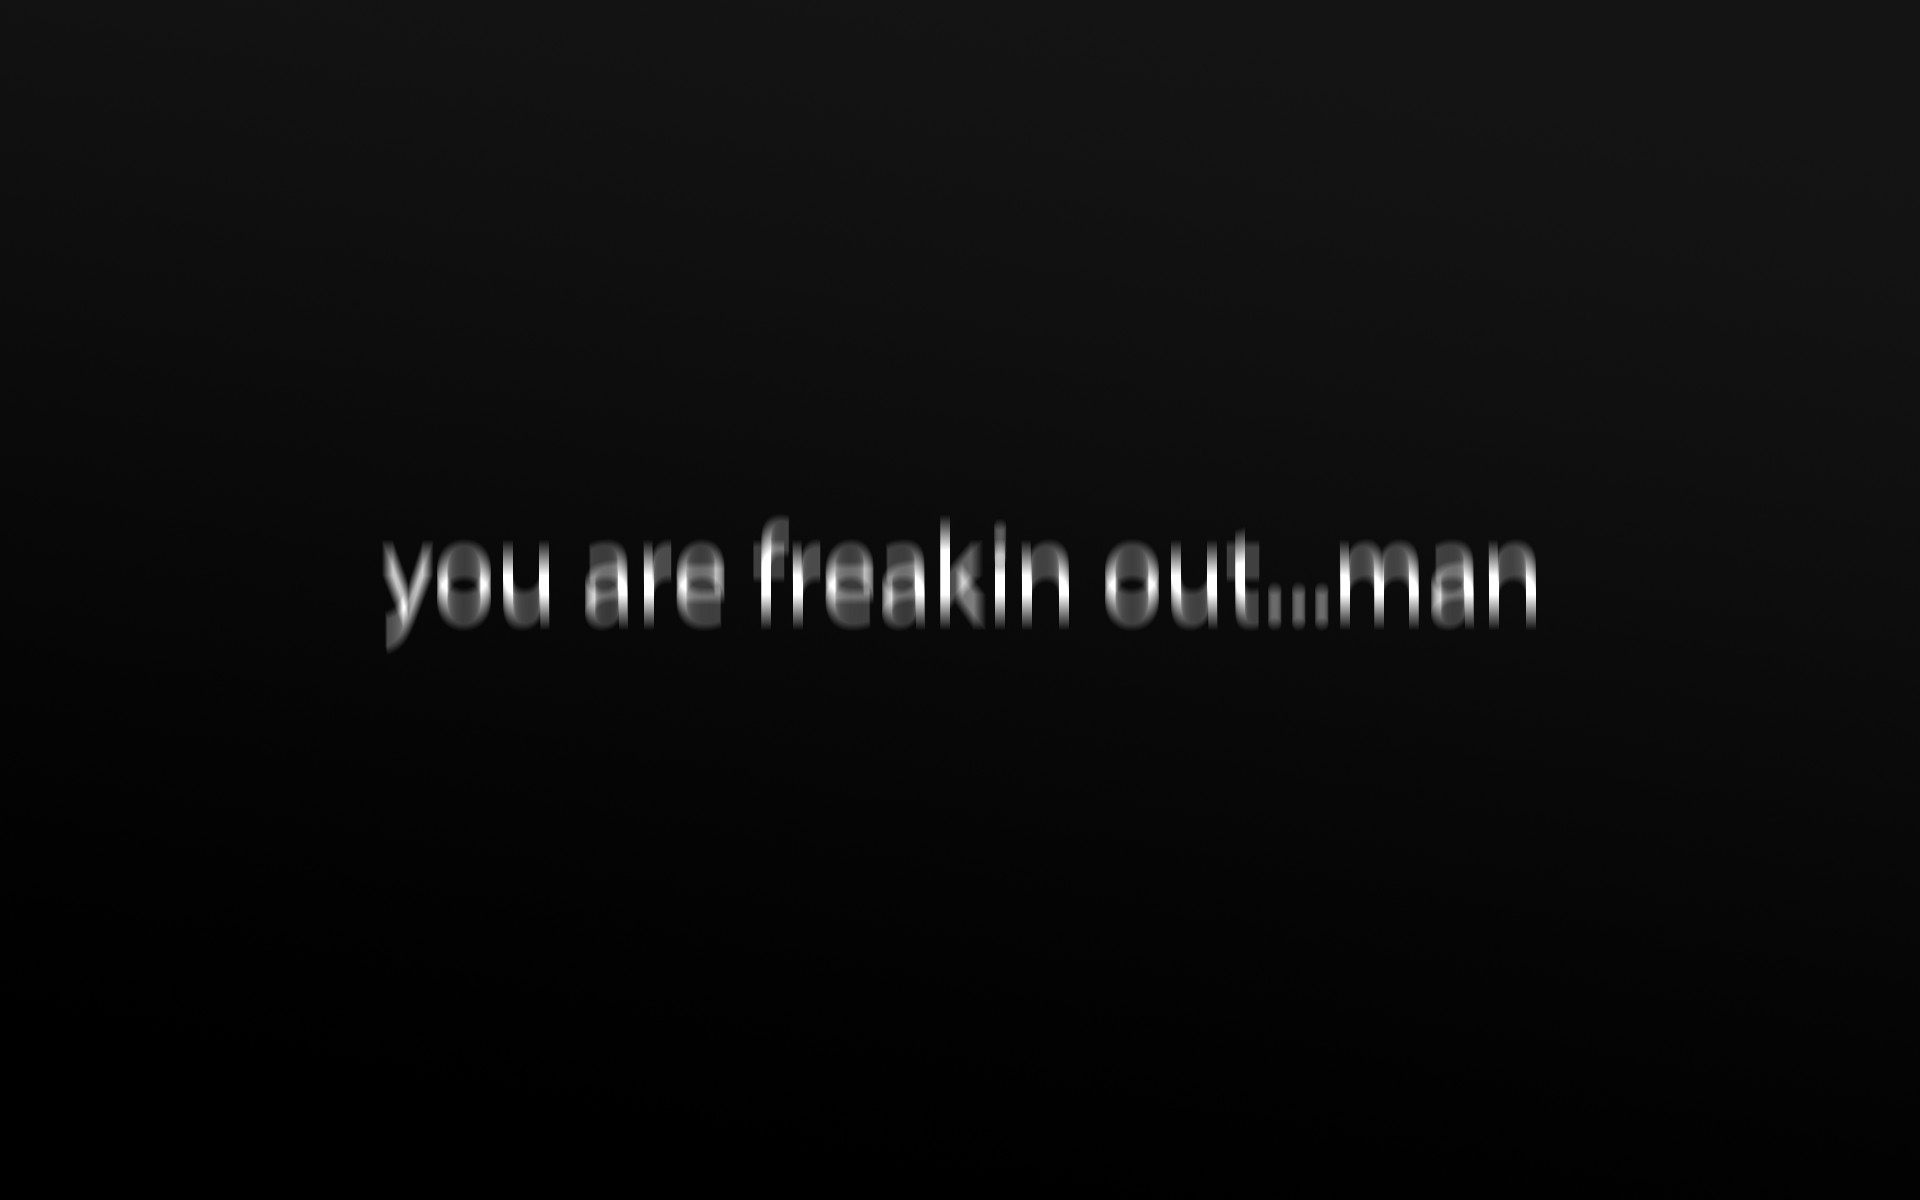 1920x1200 You are freaking out ... man wallpaper - 691264